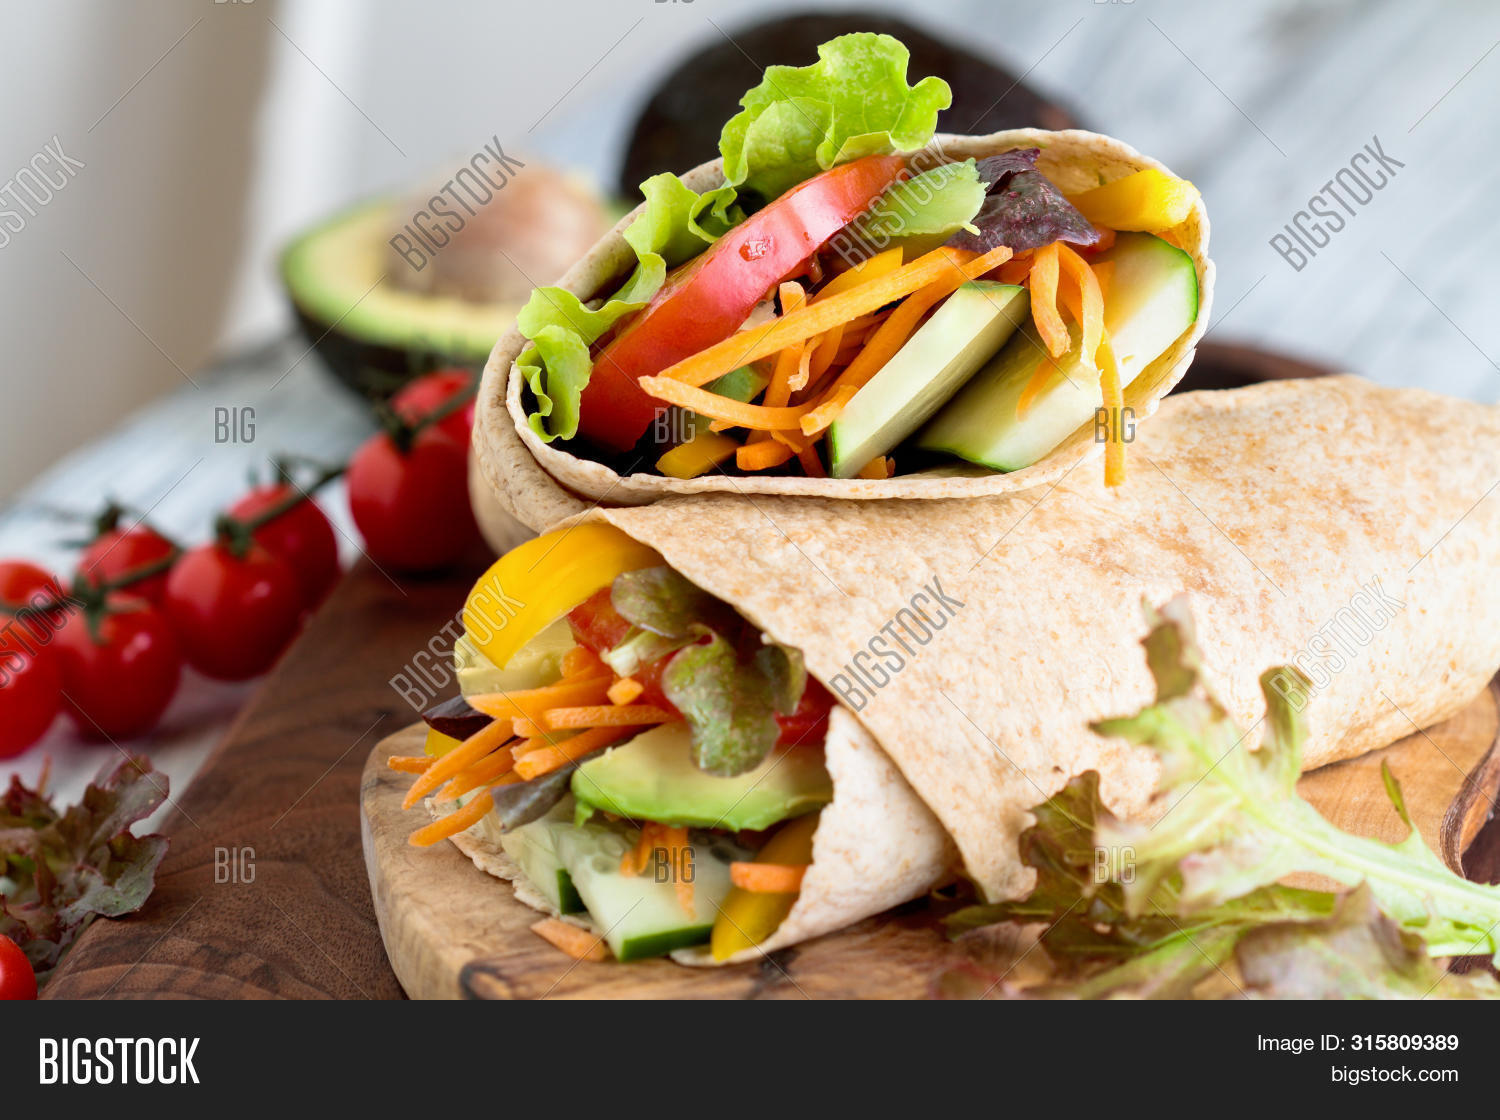 Appetizer,Avocado,Background,Bell,Bread,Burrito,Close,Closeup,Delicious,Dinner,Eating,Fast,Front,Homemade,Meal,Messy,Pepper,Restaurant,Rustic,Salad,Snack,Table,Taco,Vegetable,View,Wholegrain,Wood,board,carrots,cucumber,cutting,fajita,food,fresh,healthy,lettuce,lunch,nutritious,organic,rolled,sandwich,tomato,tortilla,up,vegan,vegetarian,veggie,vine,wheat,wrap